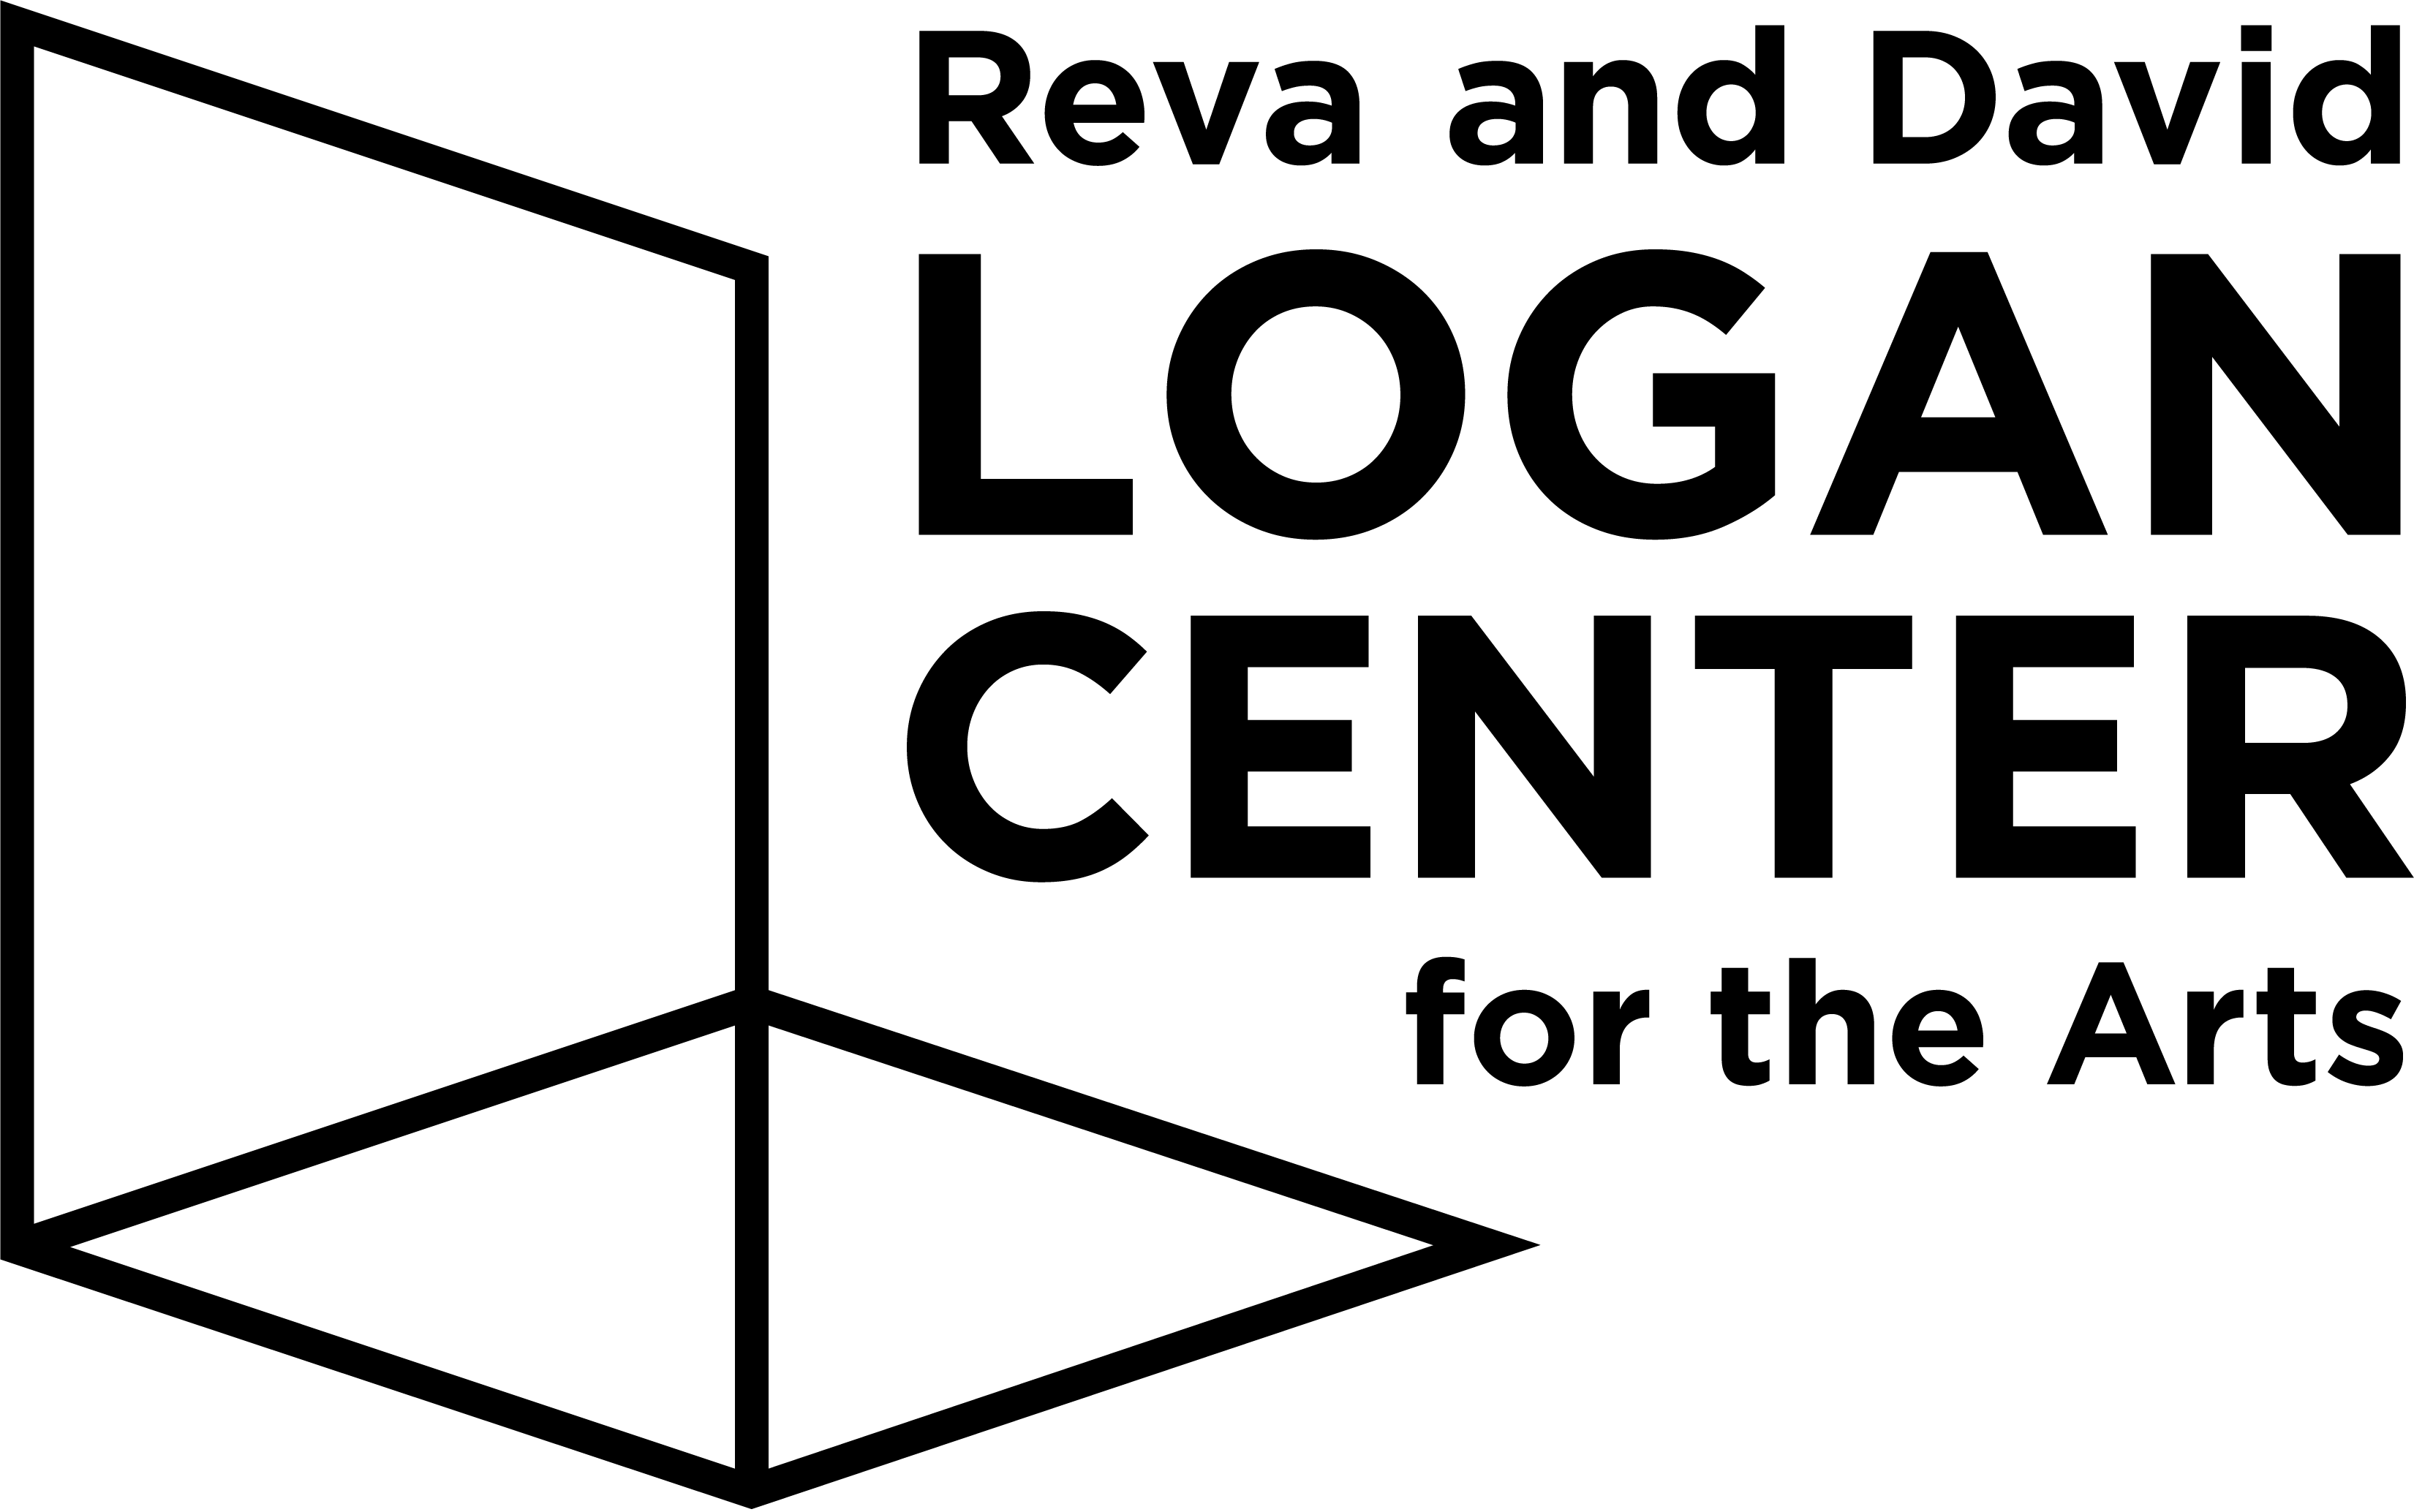 The Reva and David Logan Center for the Arts